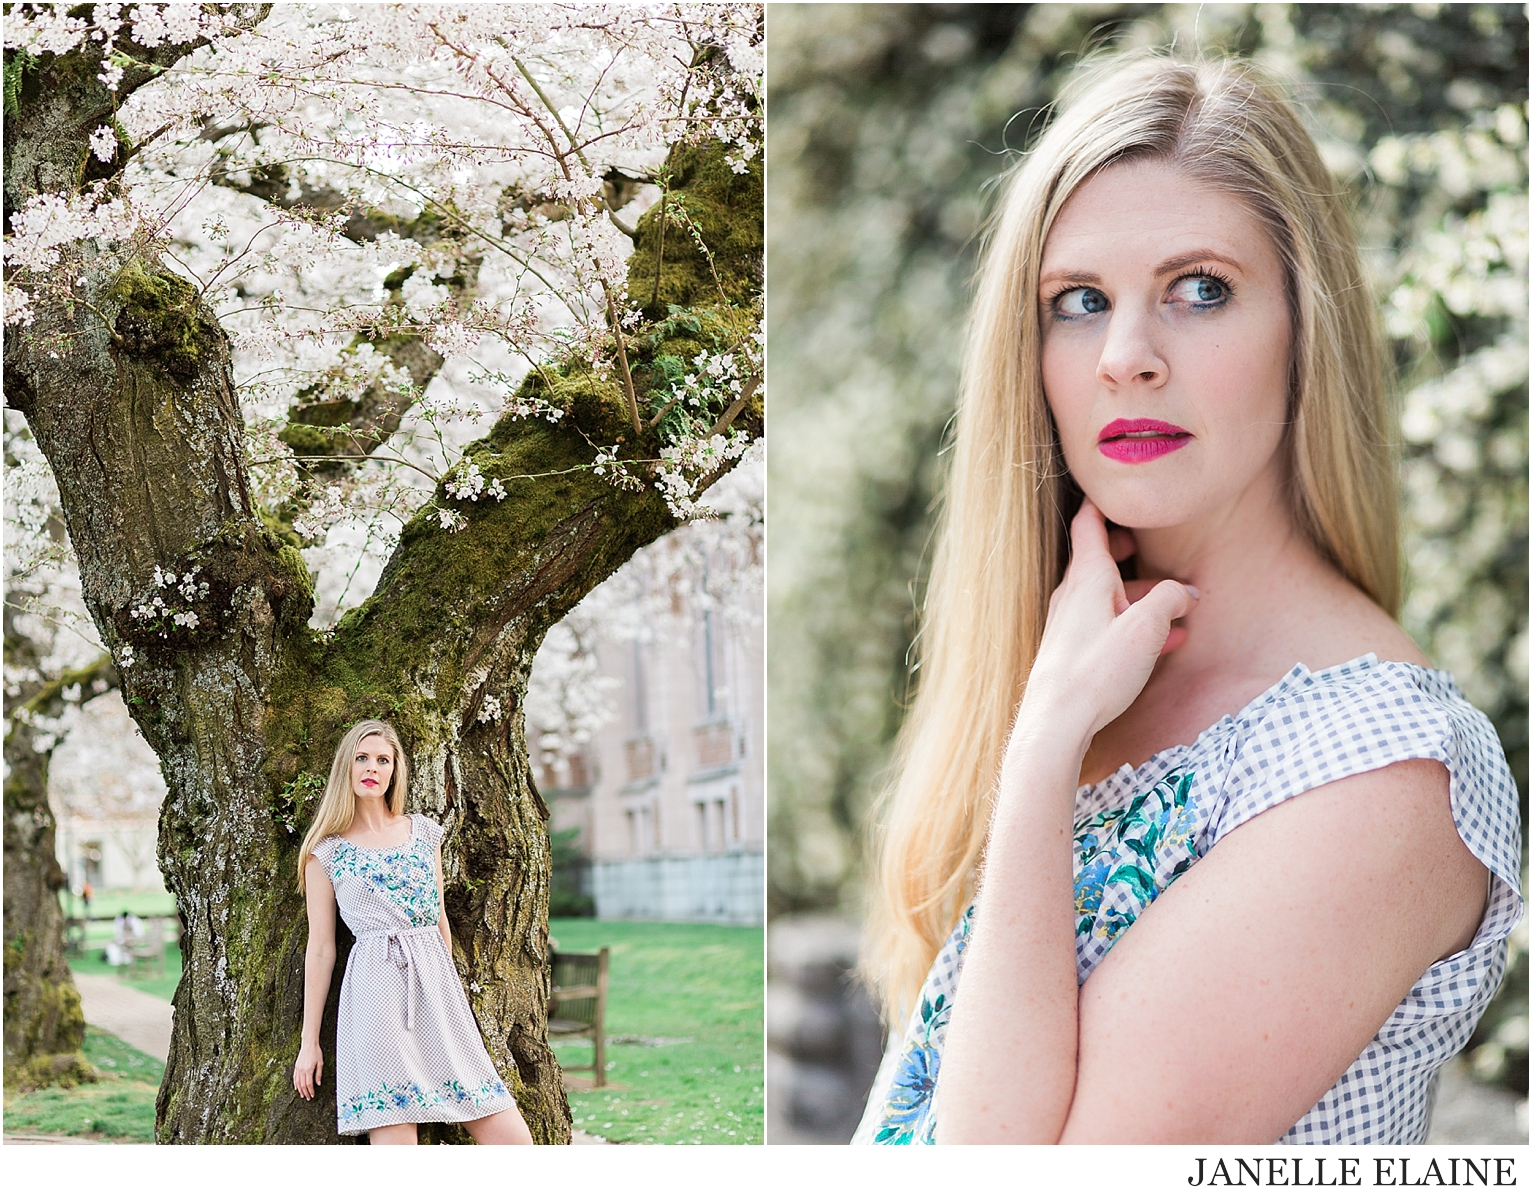 brooke-spring photo session-uw-seattle portrait photographer janelle elaine photography-105.jpg